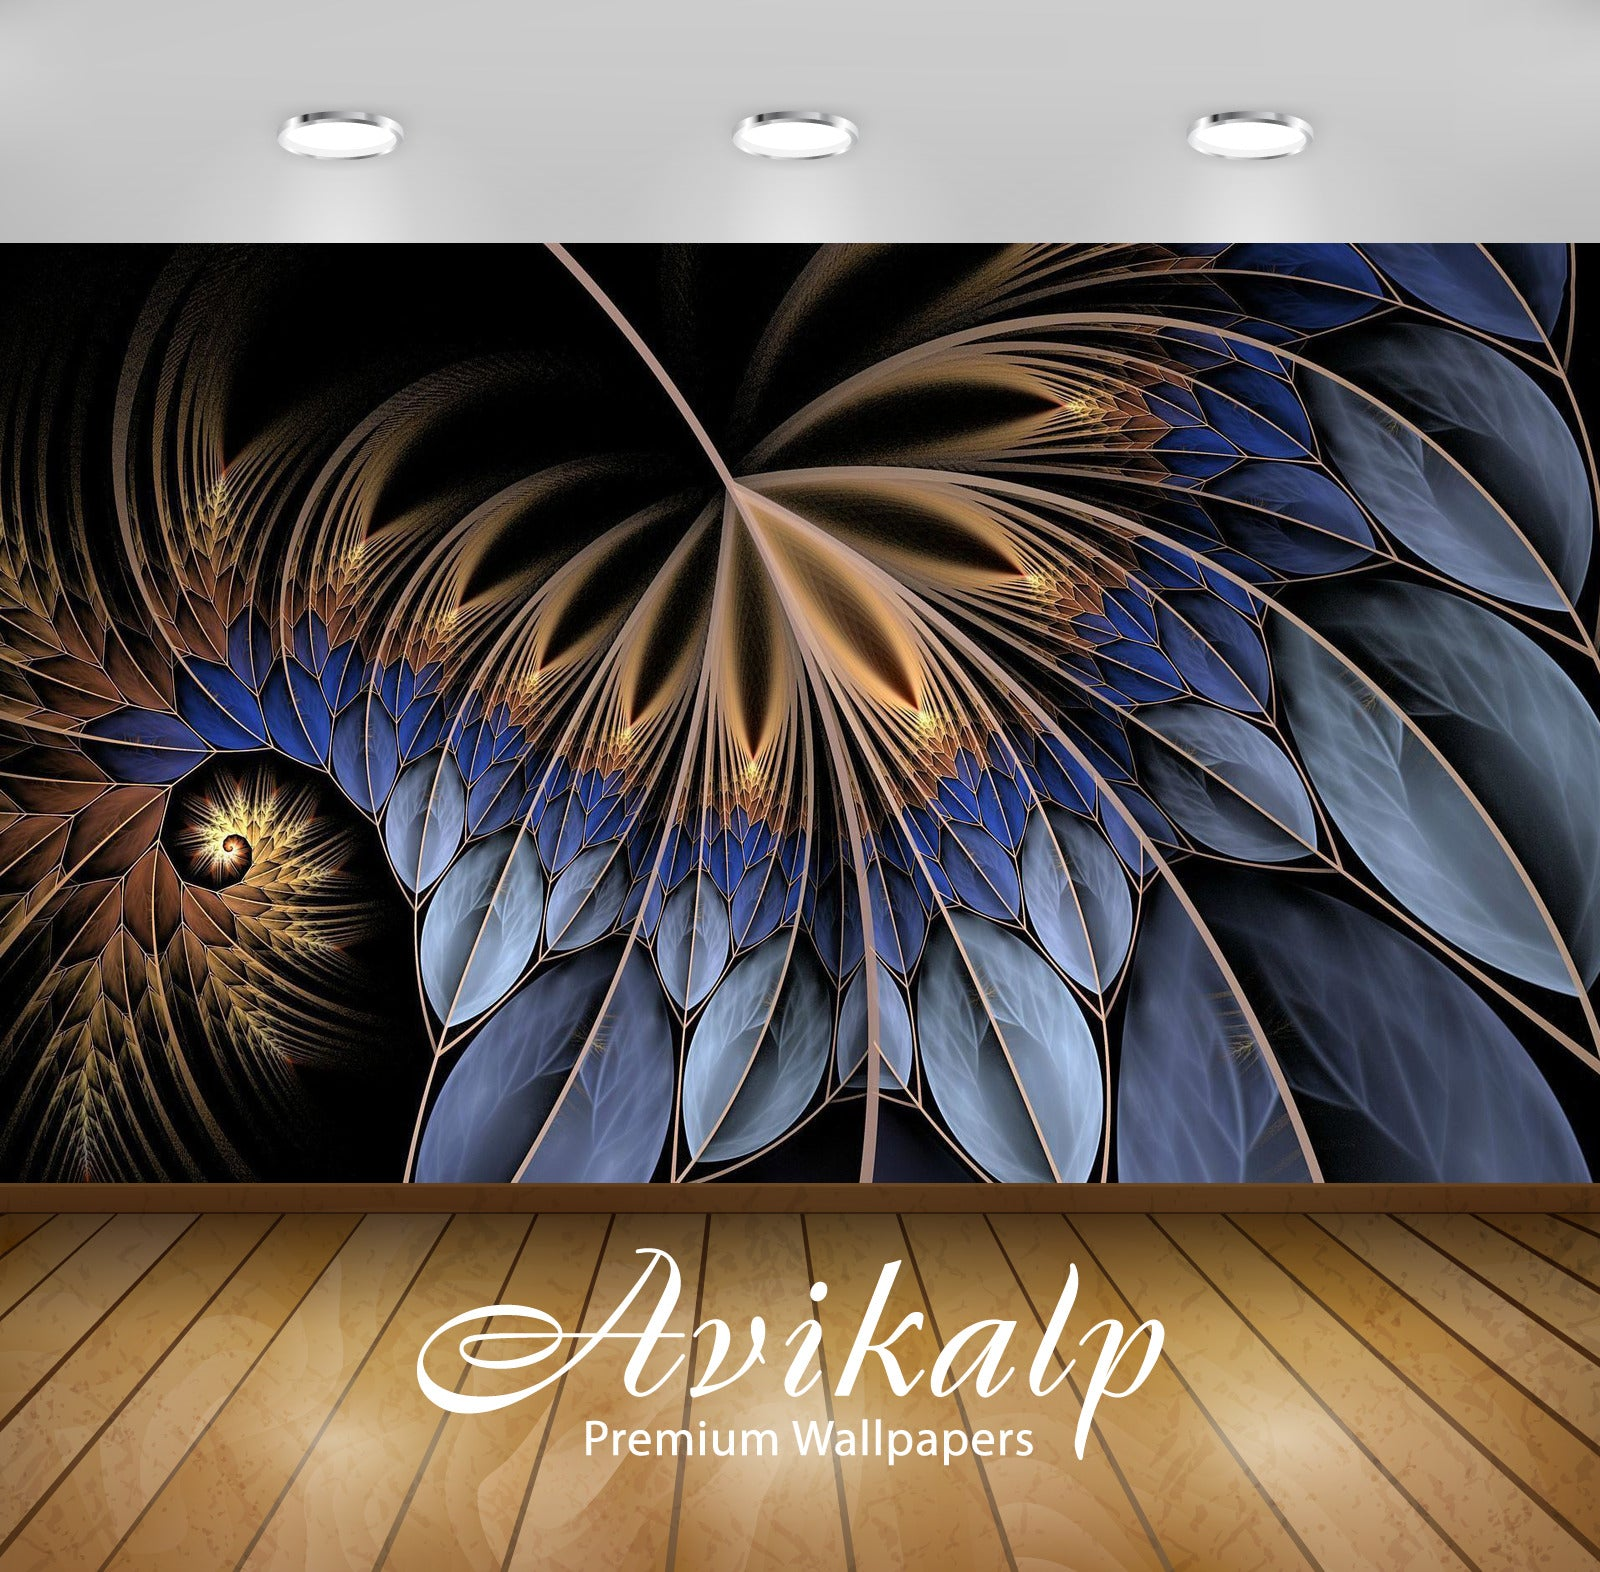 Avikalp Exclusive Awi3478 Fractal Feather Abstract Full HD Wallpapers for Living room, Hall, Kids Ro